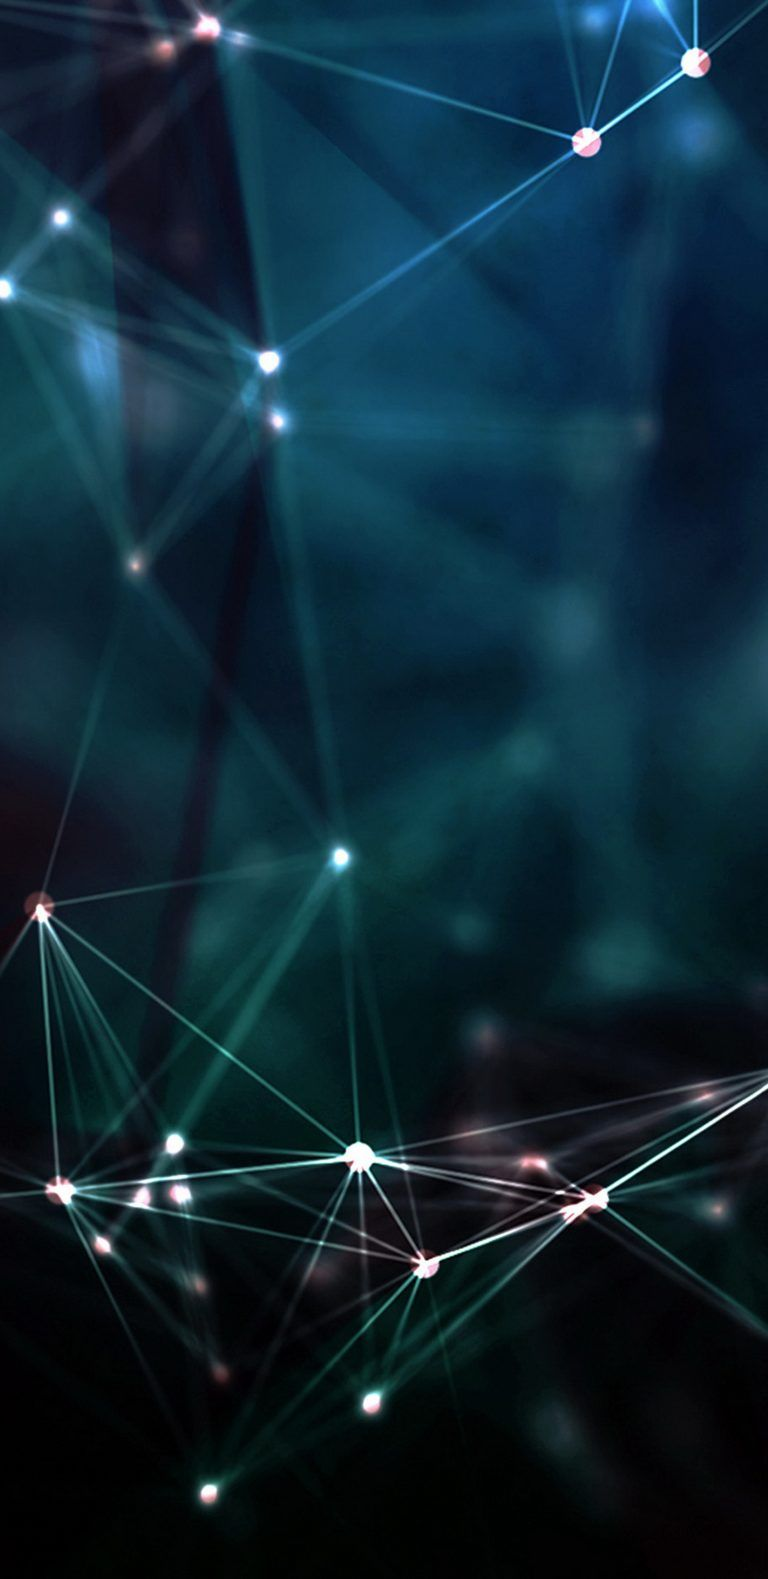 3D Dark Background with Lights for Samsung Galaxy S9 Wallpaper